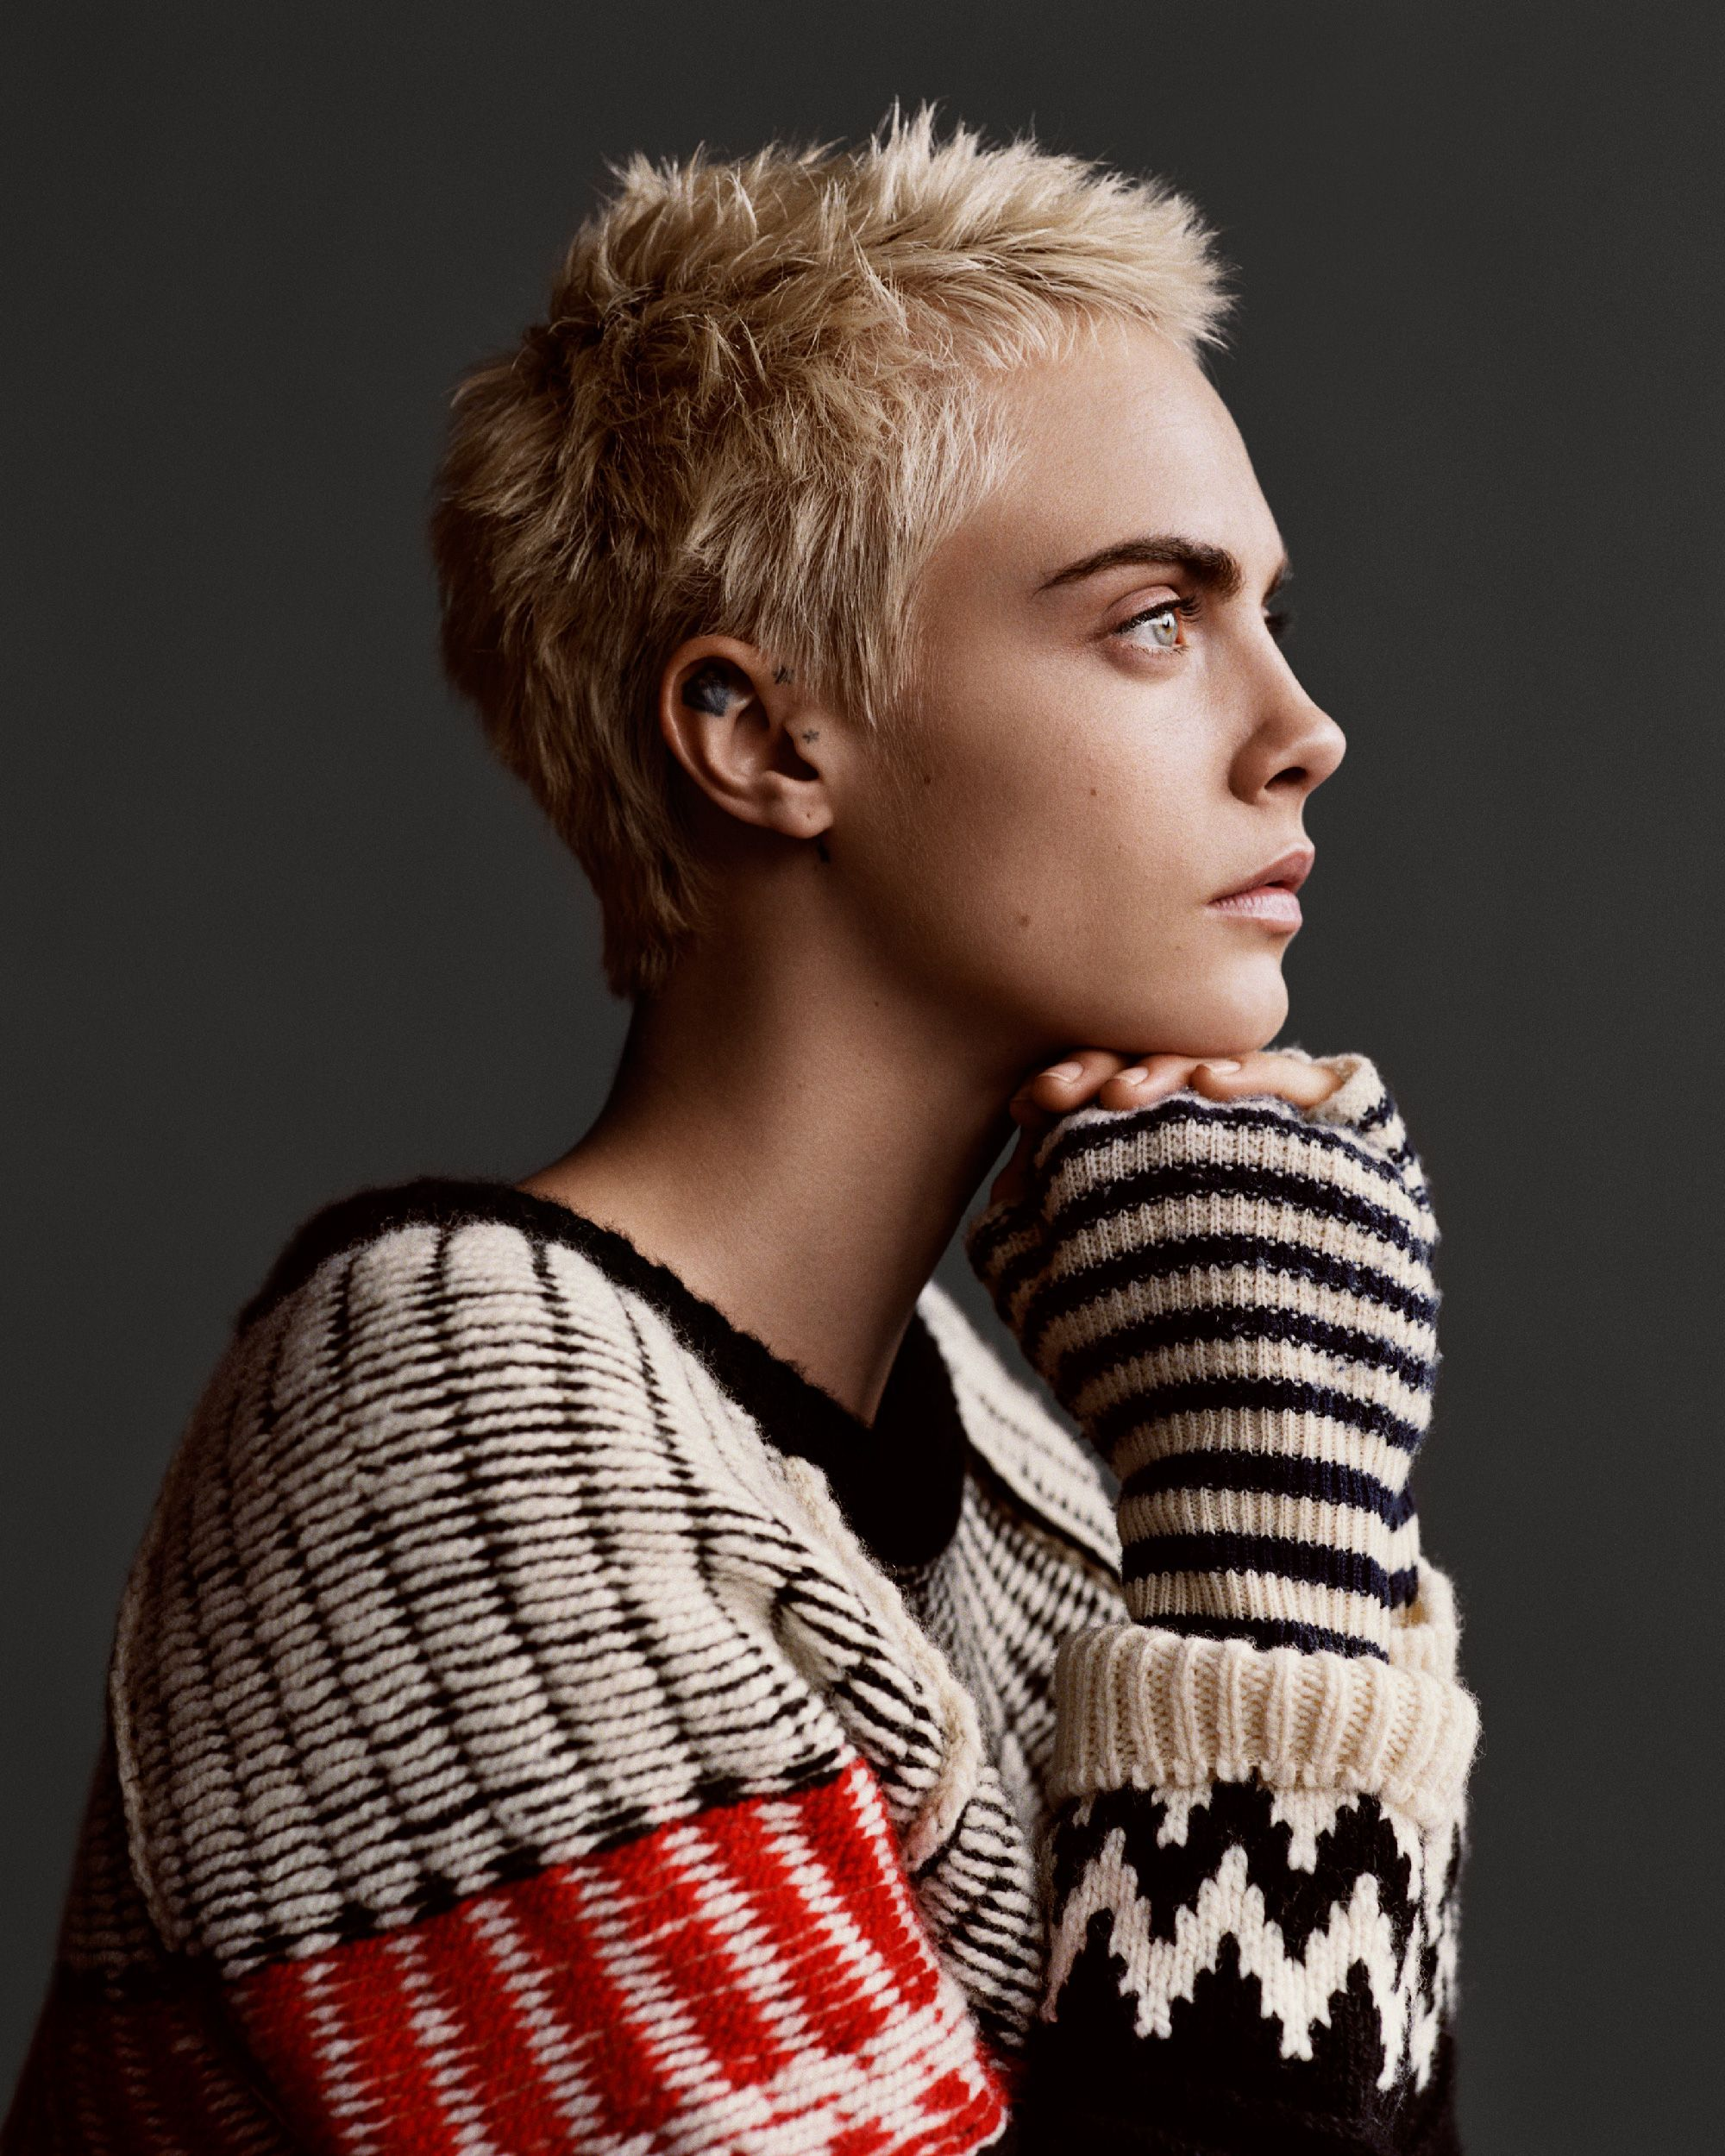 Cara Delevingne On Style Womanhood Her 2018 Goals In 2019